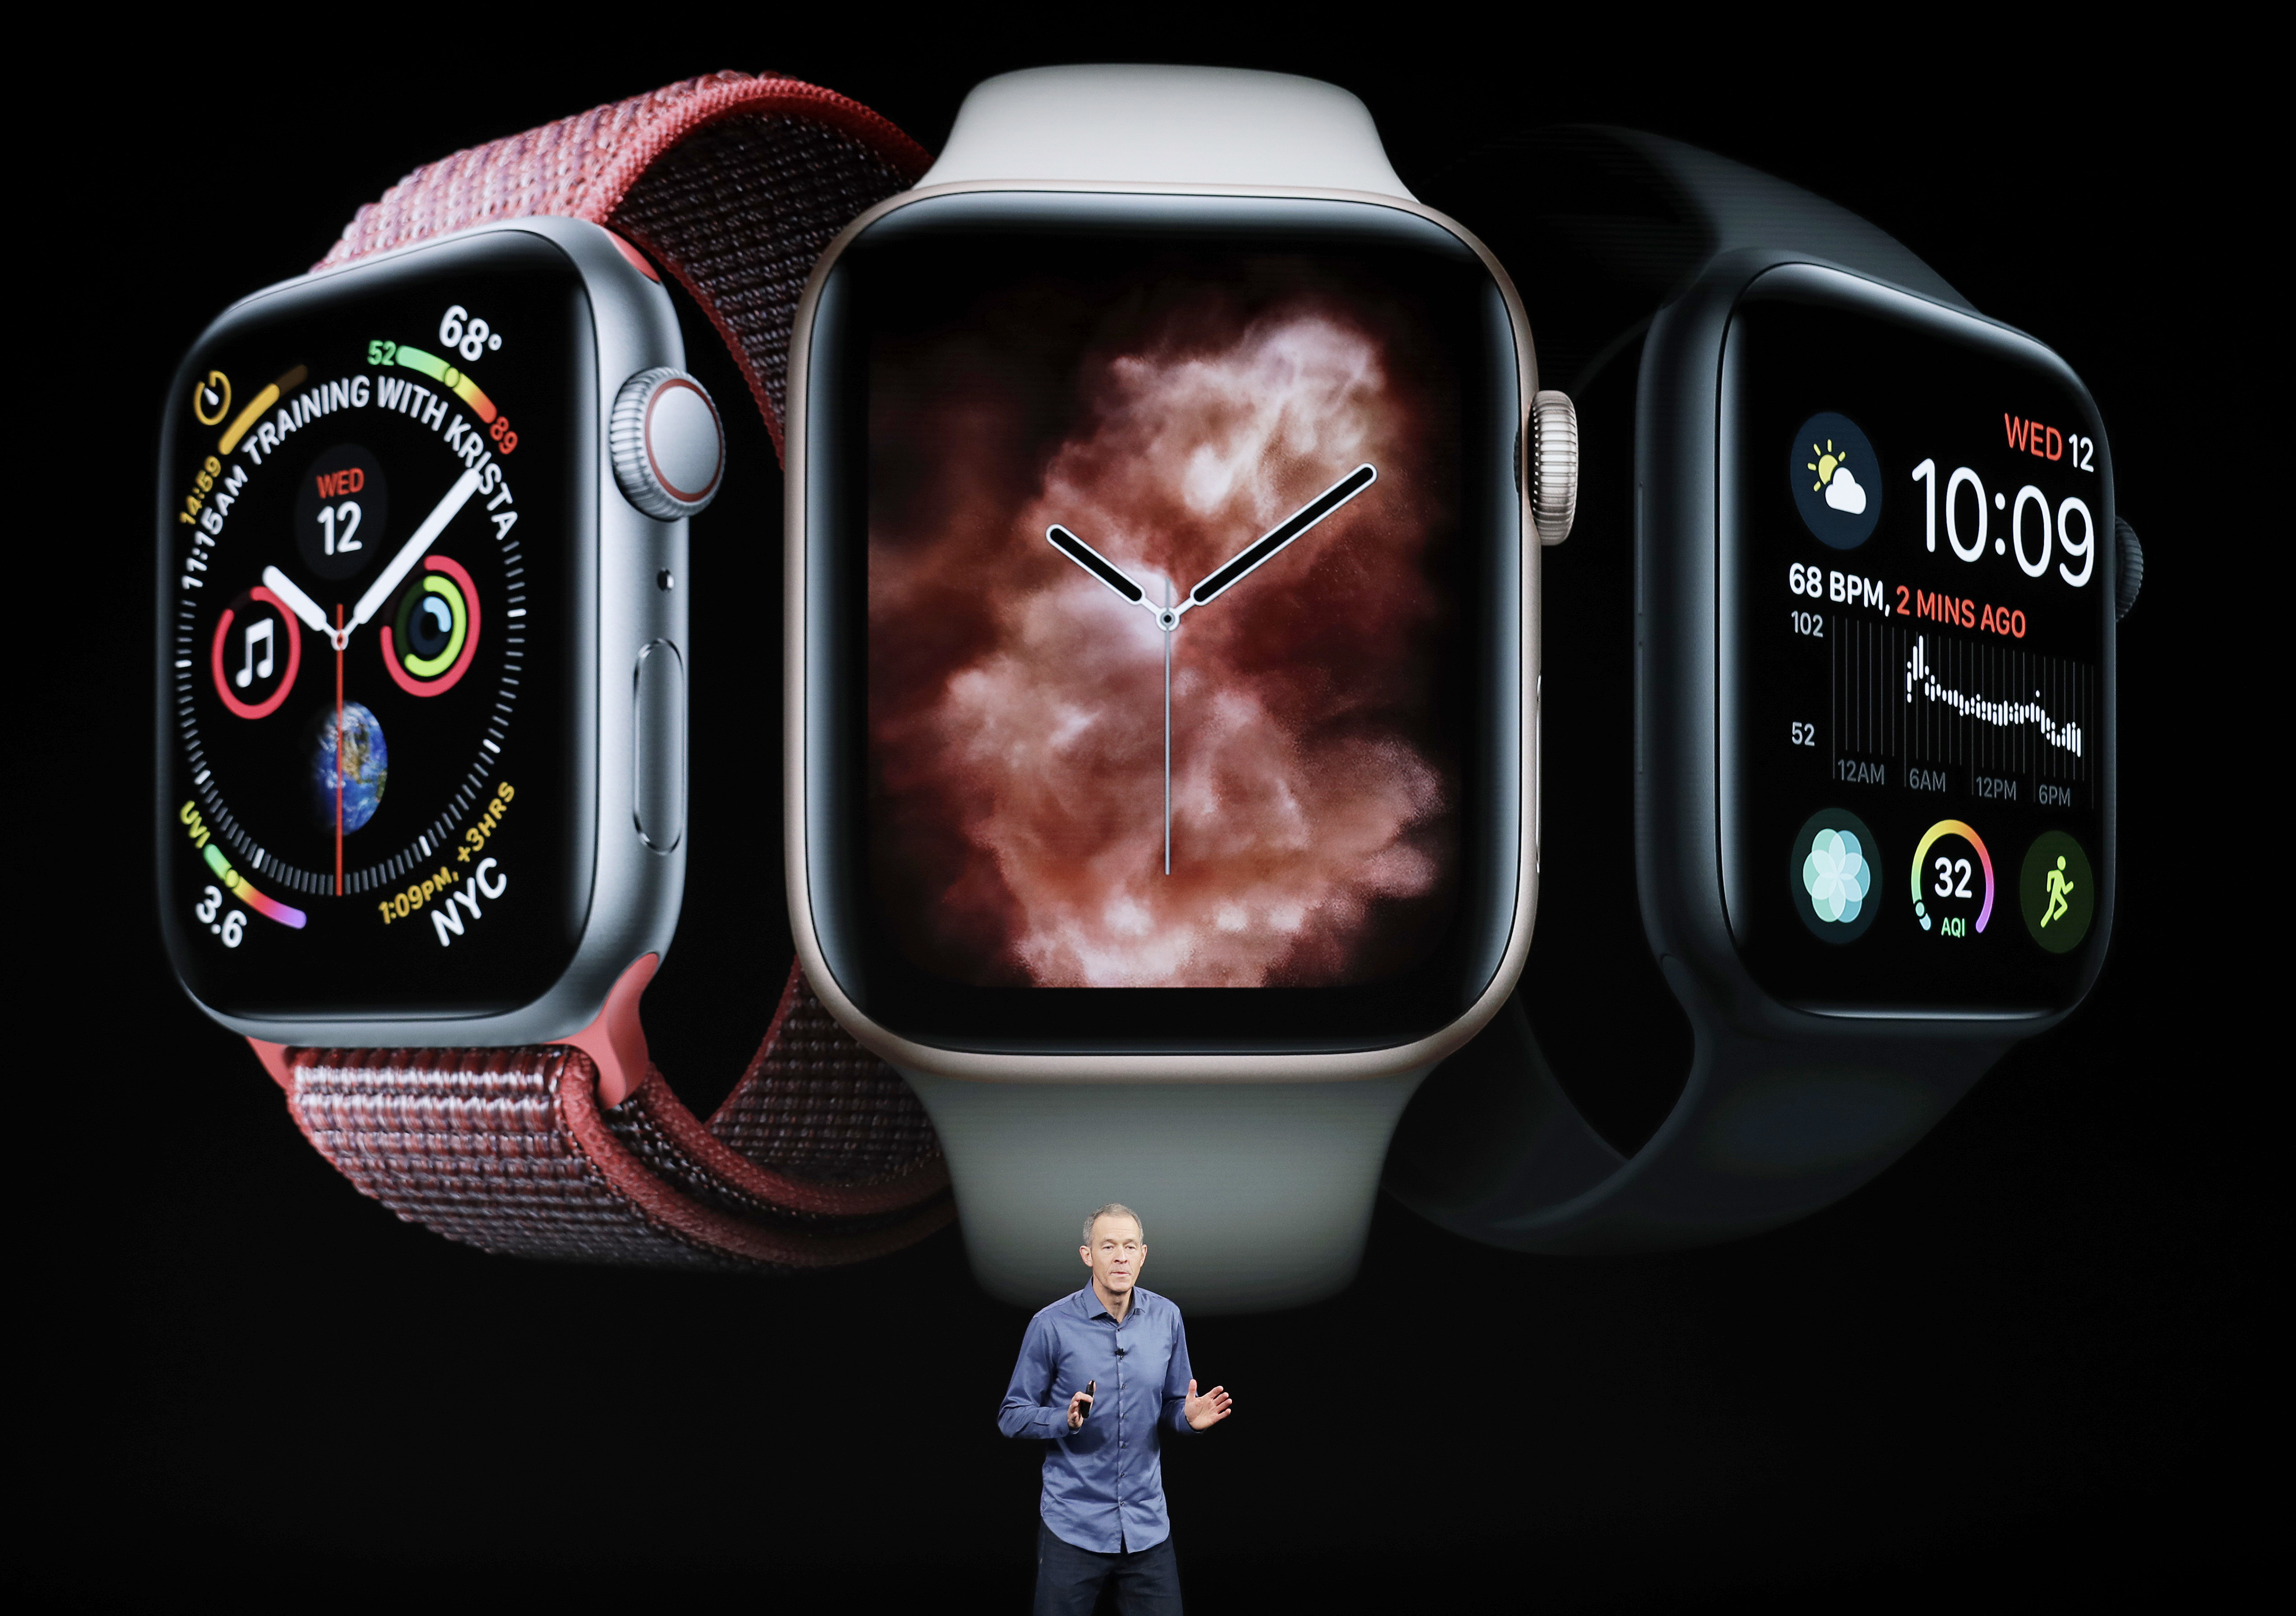 Apple now says its smartwatch tech to detect atrial fibrillation is not for those with atrial fibrillation